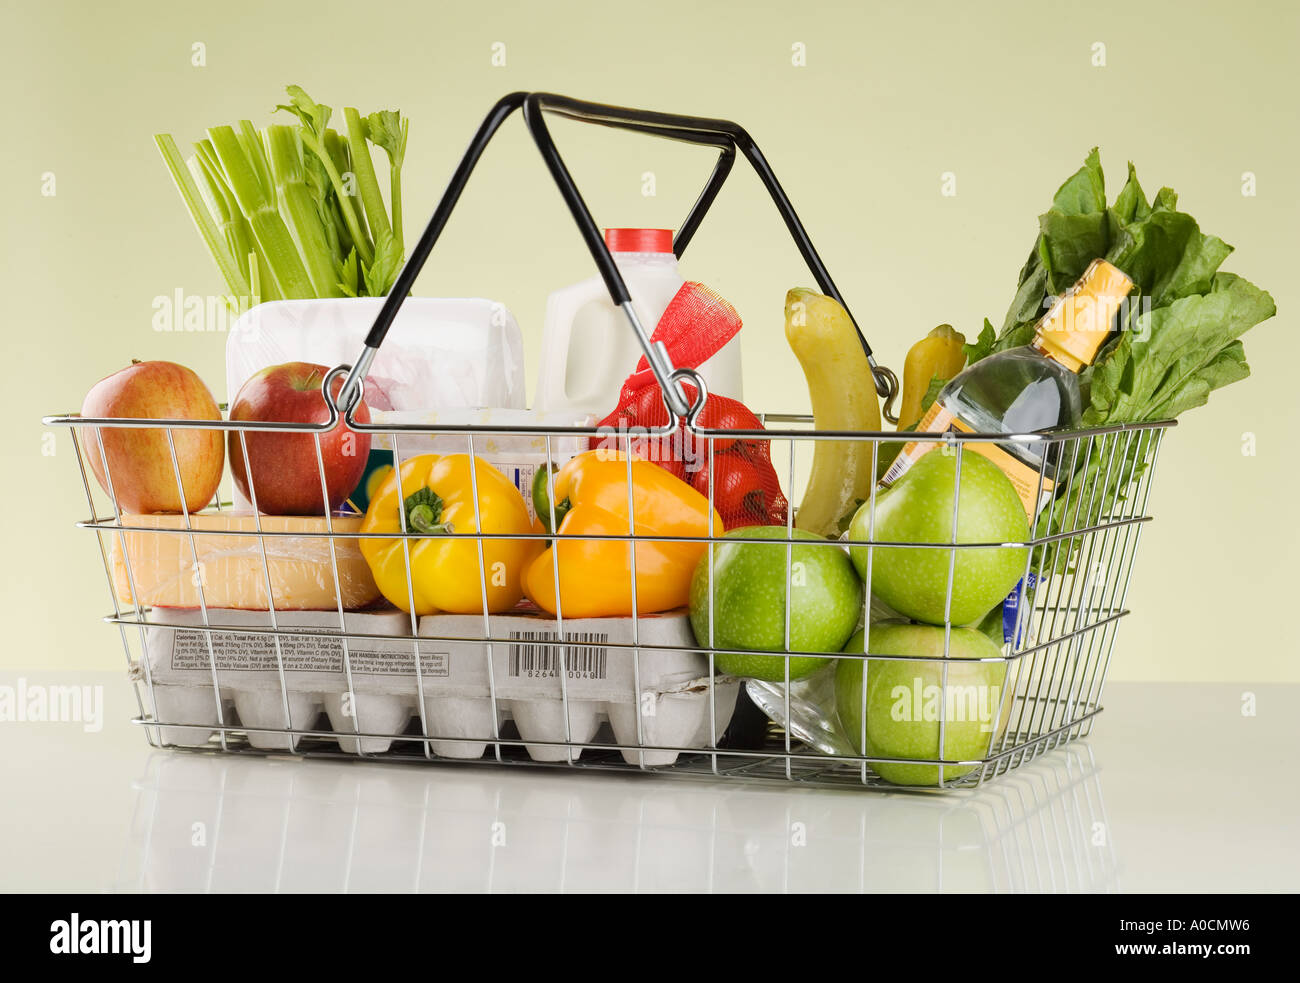 Still life of groceries in basket - Stock Image